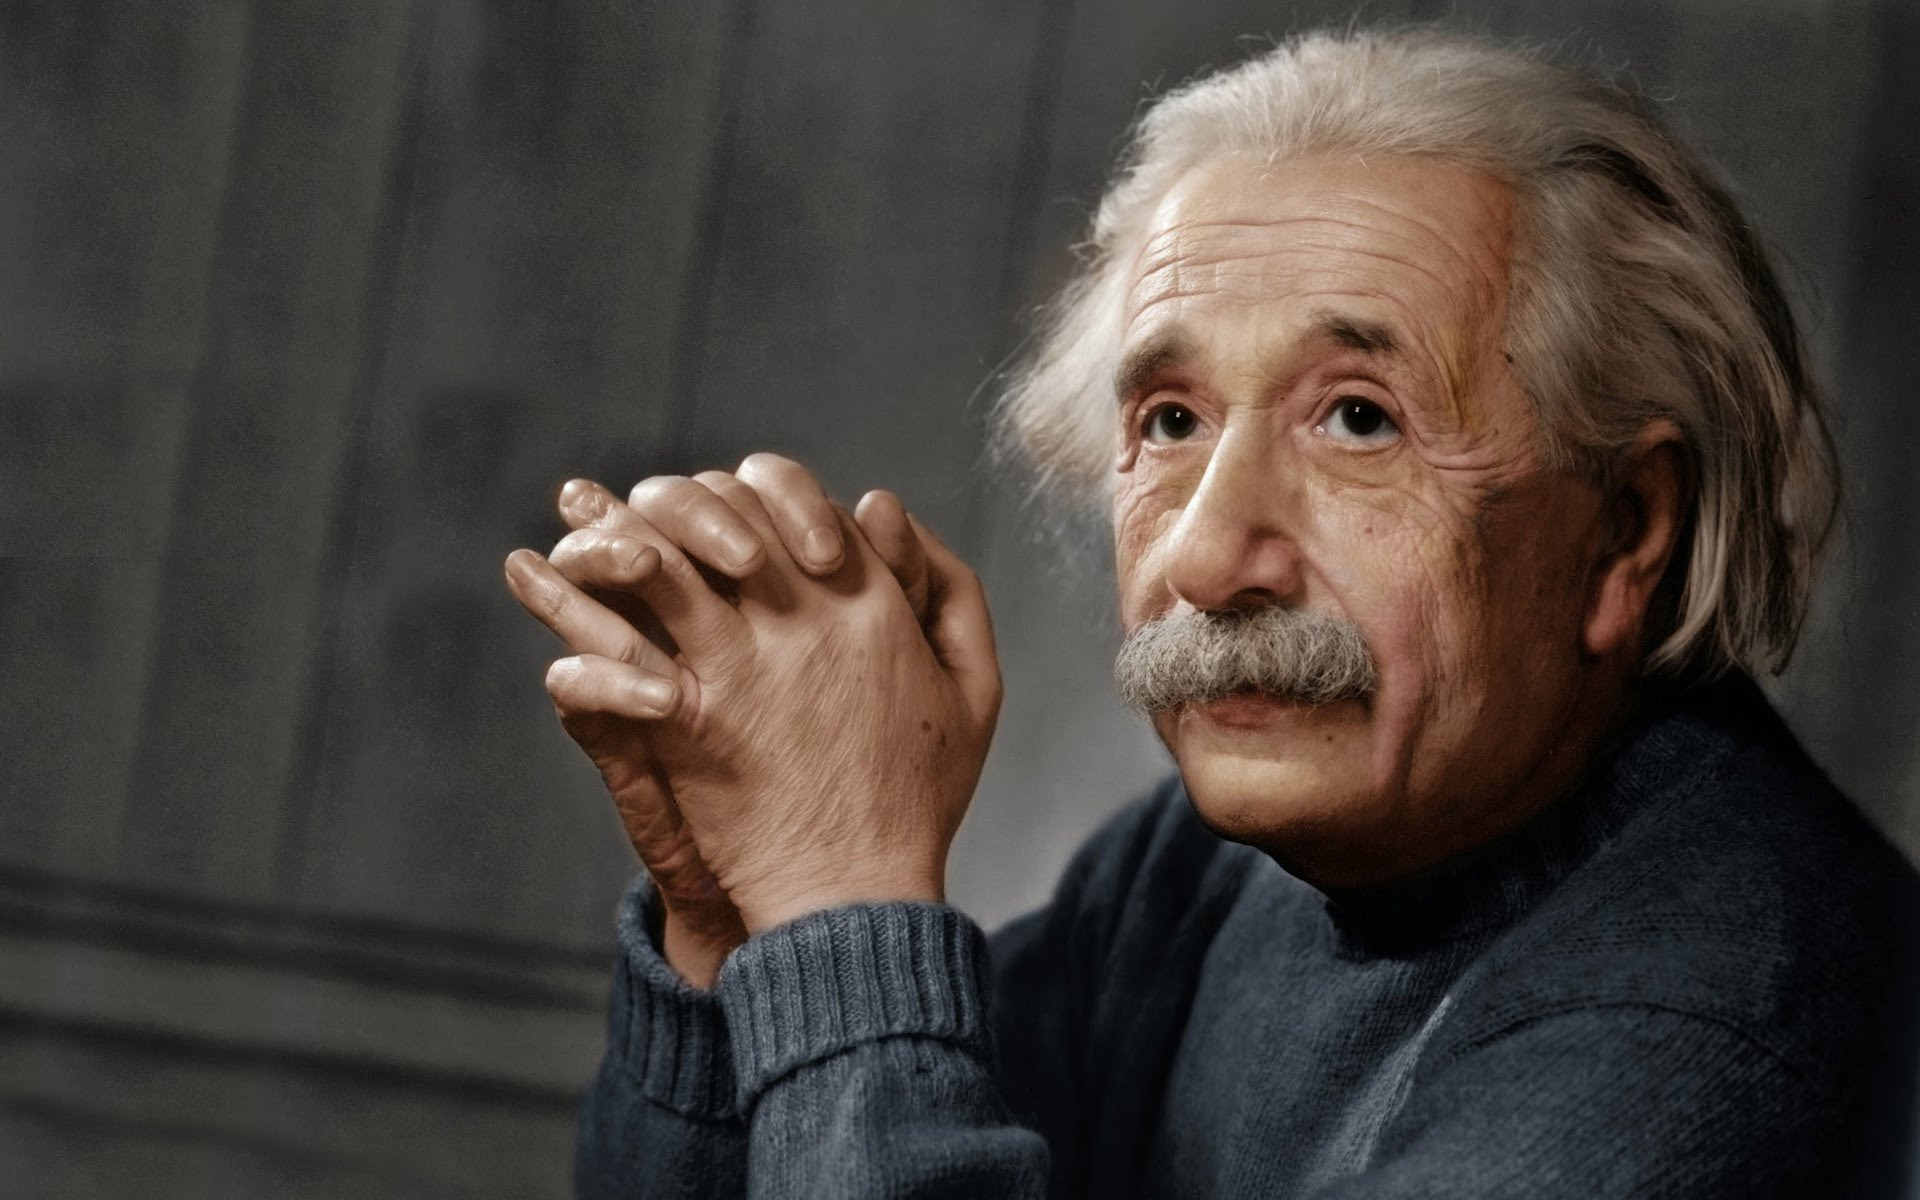 """The intuitive mind is a sacred gift and the rational mind is a faithful servant. We have created a society that honours the servant and has forgotten the gift"" – Albert Einstein"